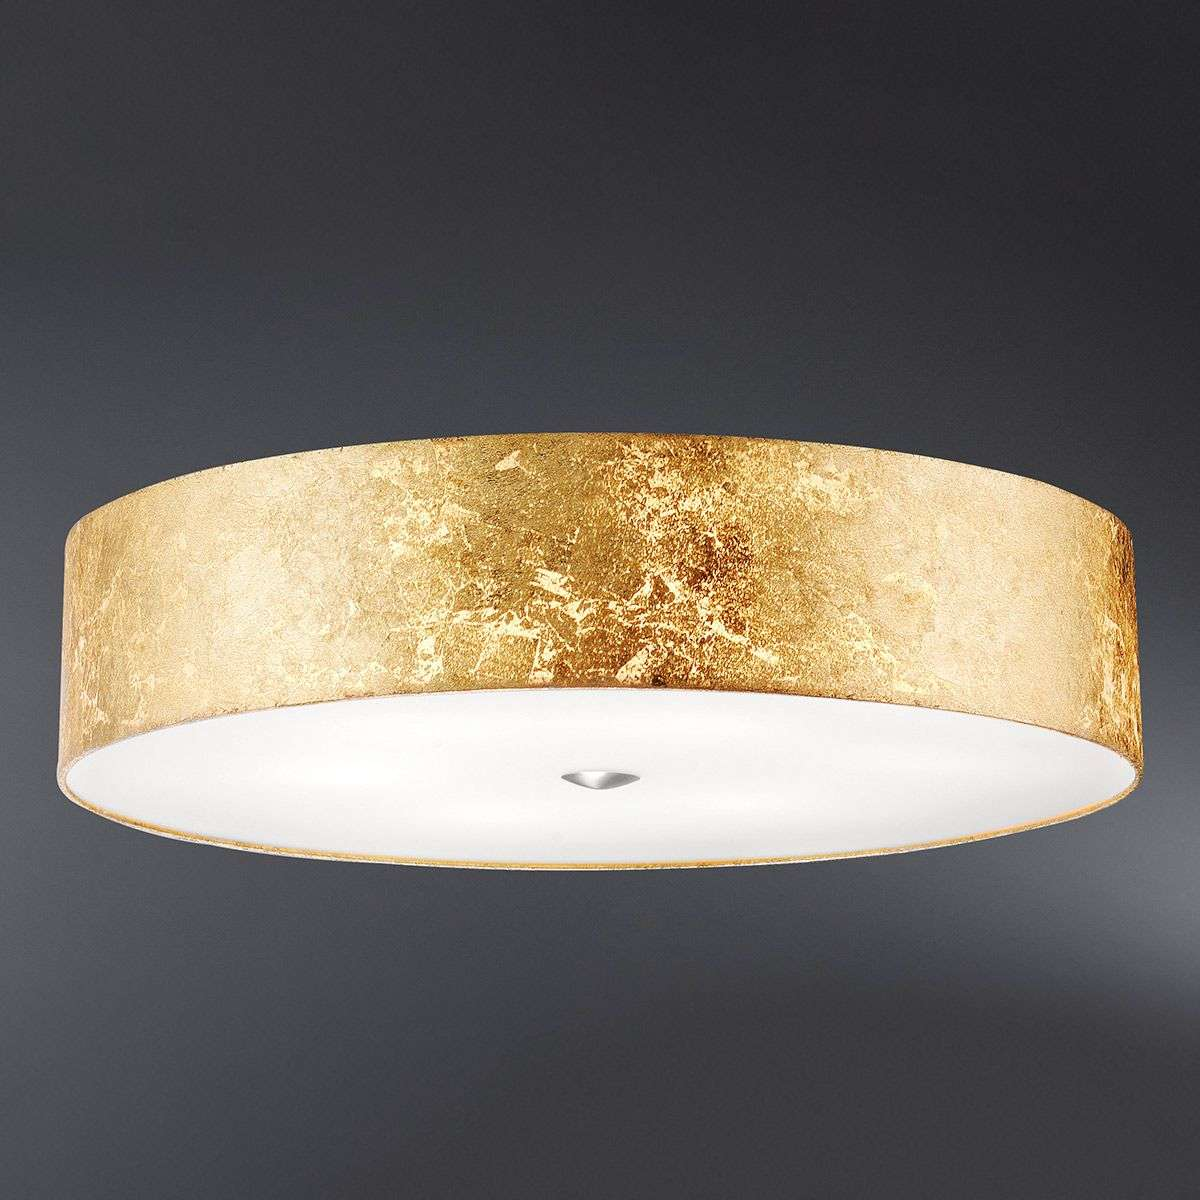 Led Ceiling Lights Gold: Alea Loop Ceiling Light With Gold Leaf